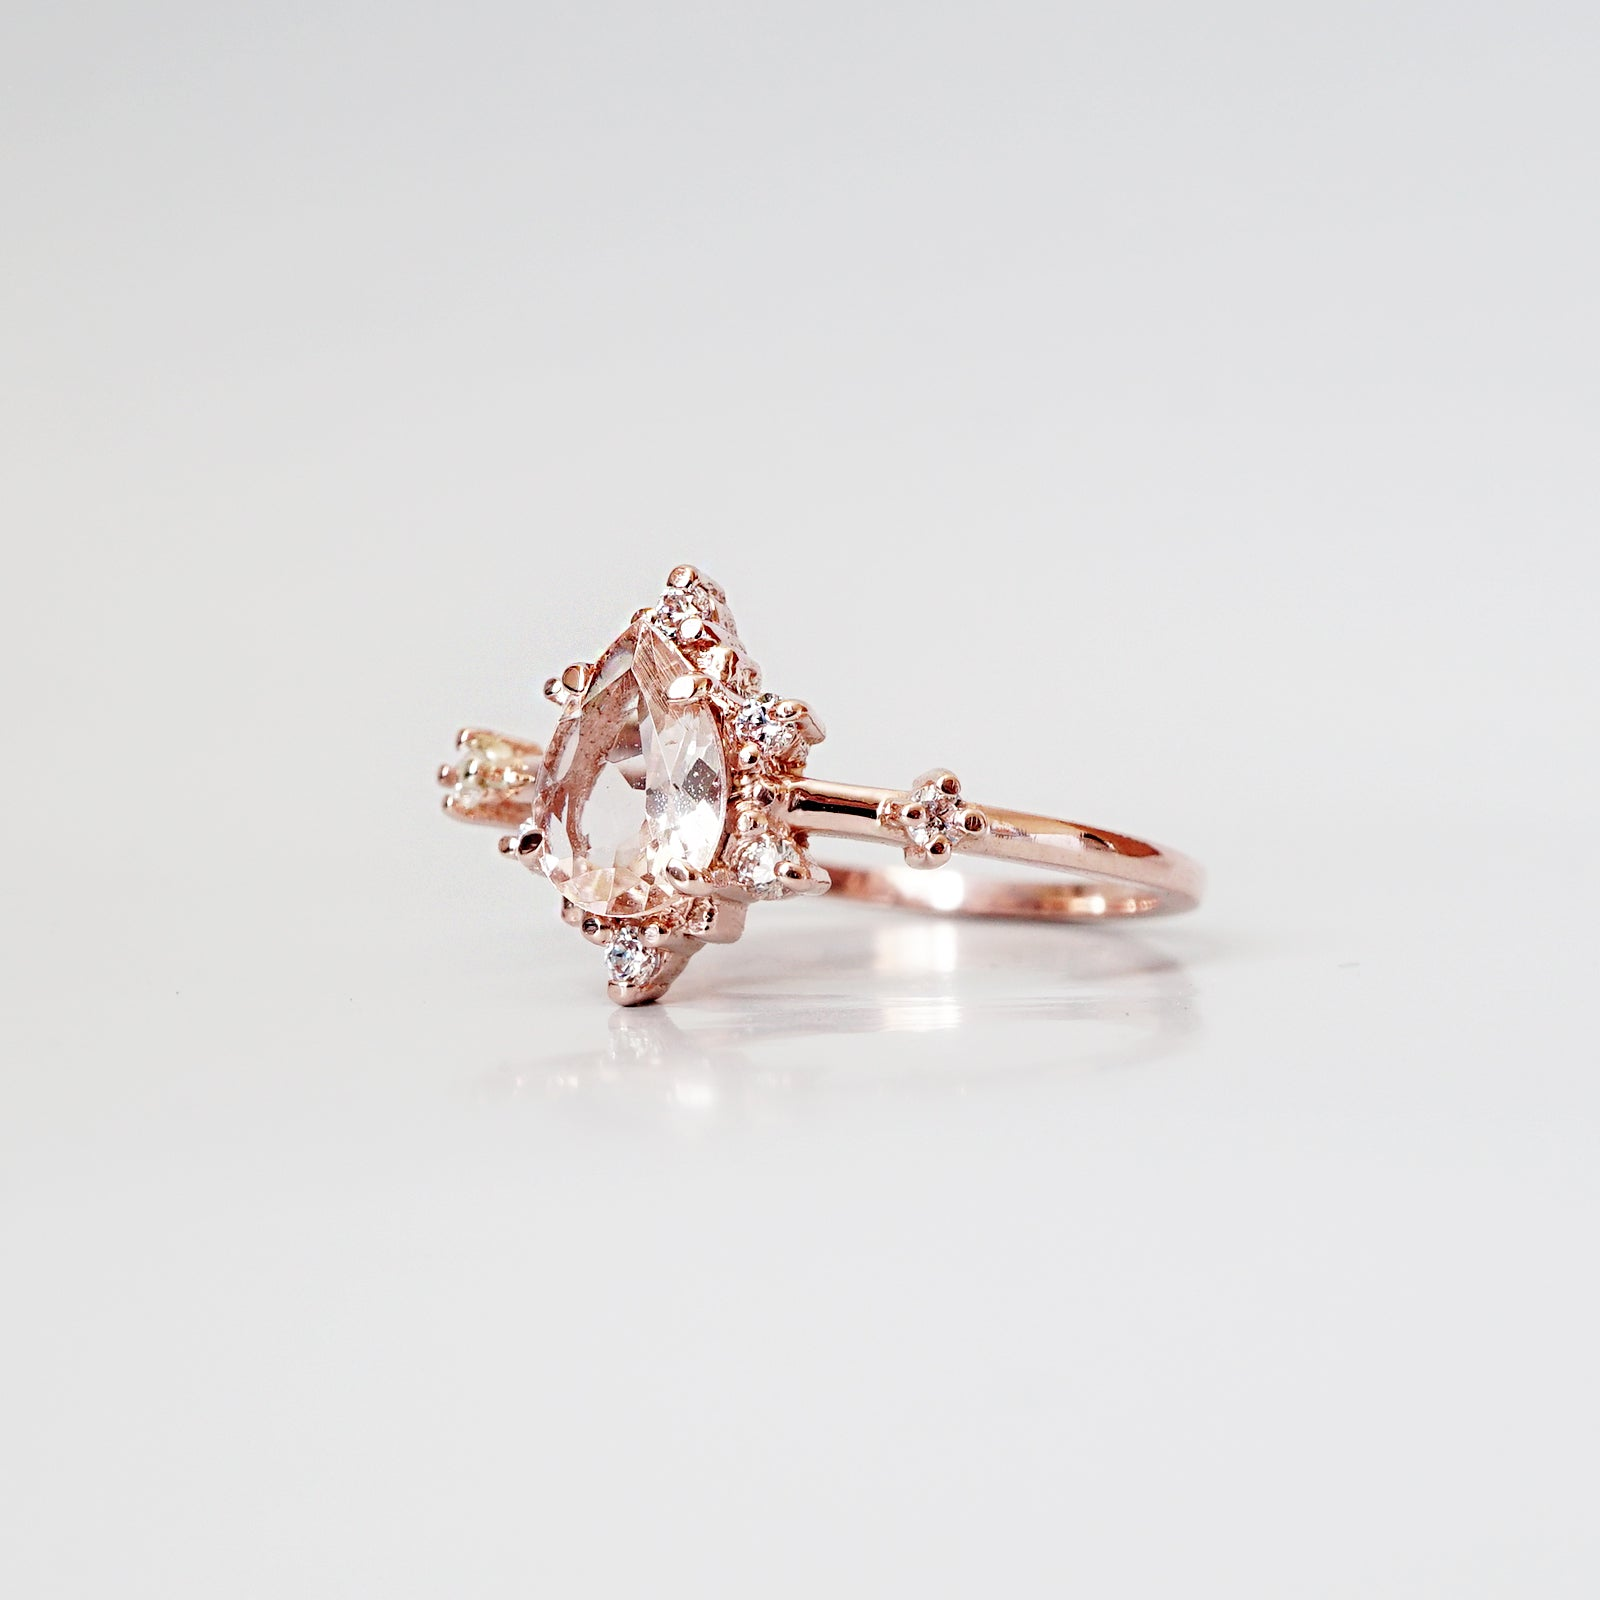 Morganite Crush Ring - Tippy Taste Jewelry